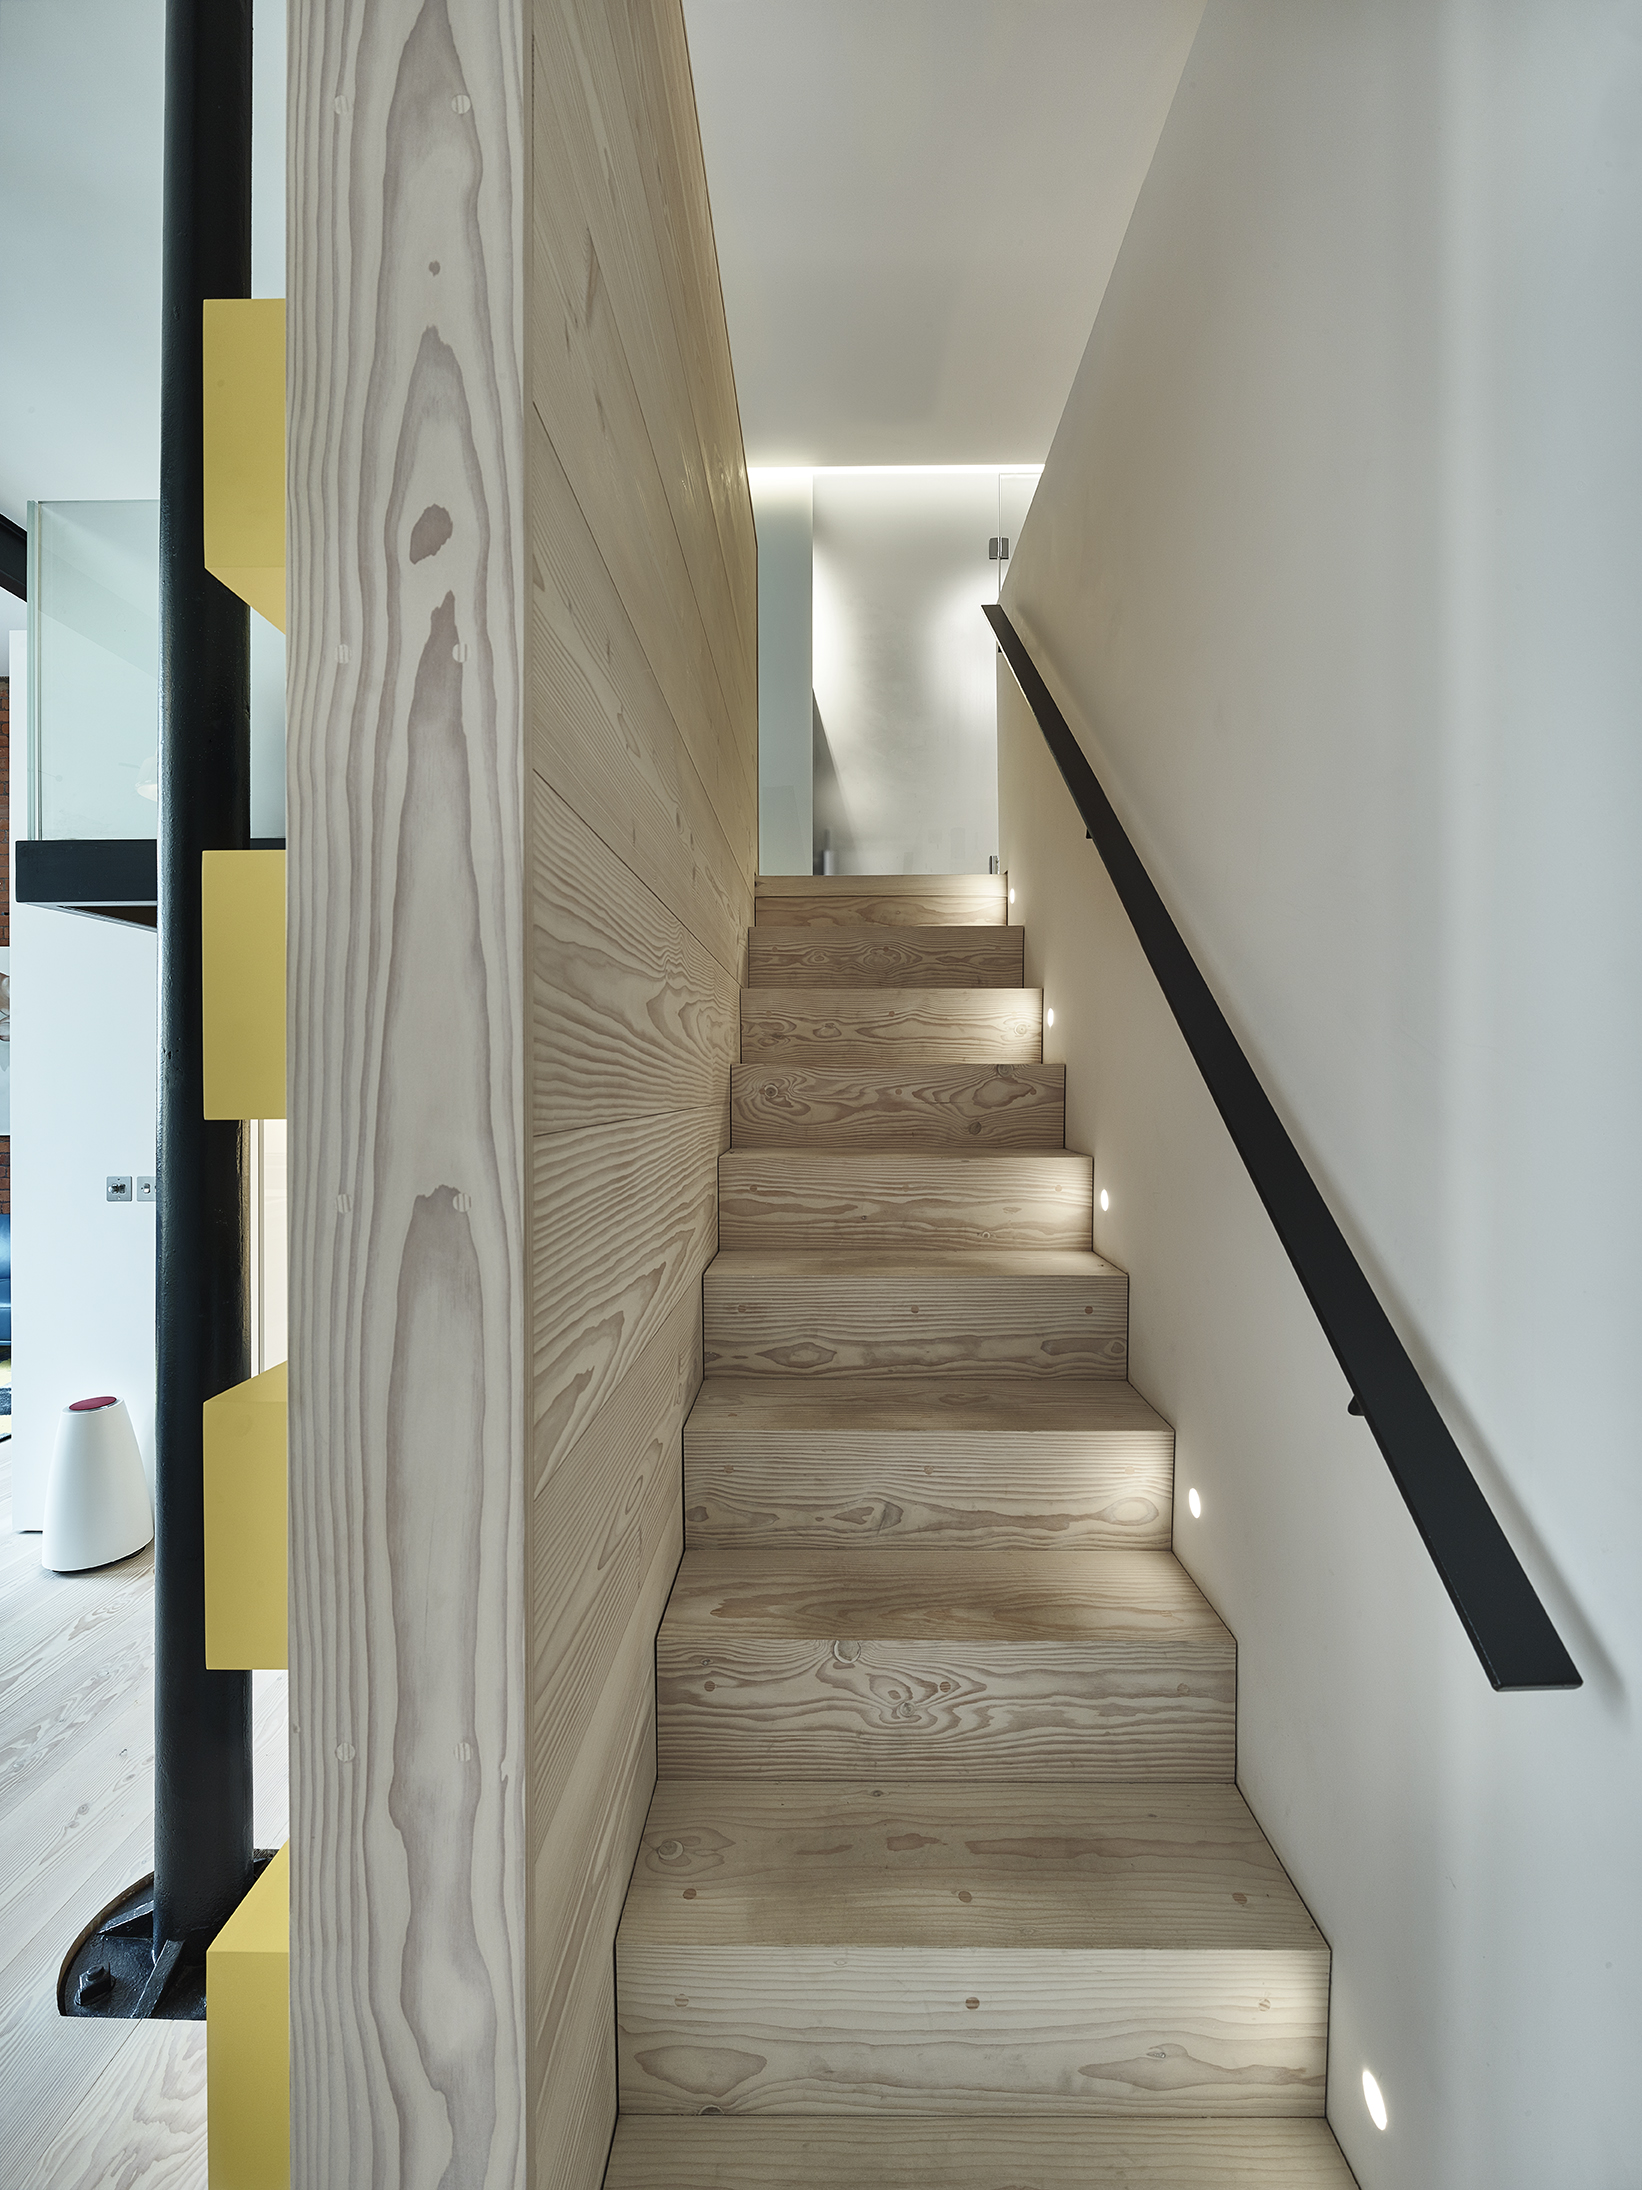 </p> <p>Find your ideal home design pro on designfor-me.com - get matched and see who's interested in your home project. Click image to see more inspiration from our design pros</p> <p>Design by Scott, architect from Manchester, North West</p> <p>#architecture #homedesign #modernhomes #homeinspiration #staircases #staircasedesign #staircaseinspiration #staircaseideas #staircasedesignideas #architecturedetails </p> <p>